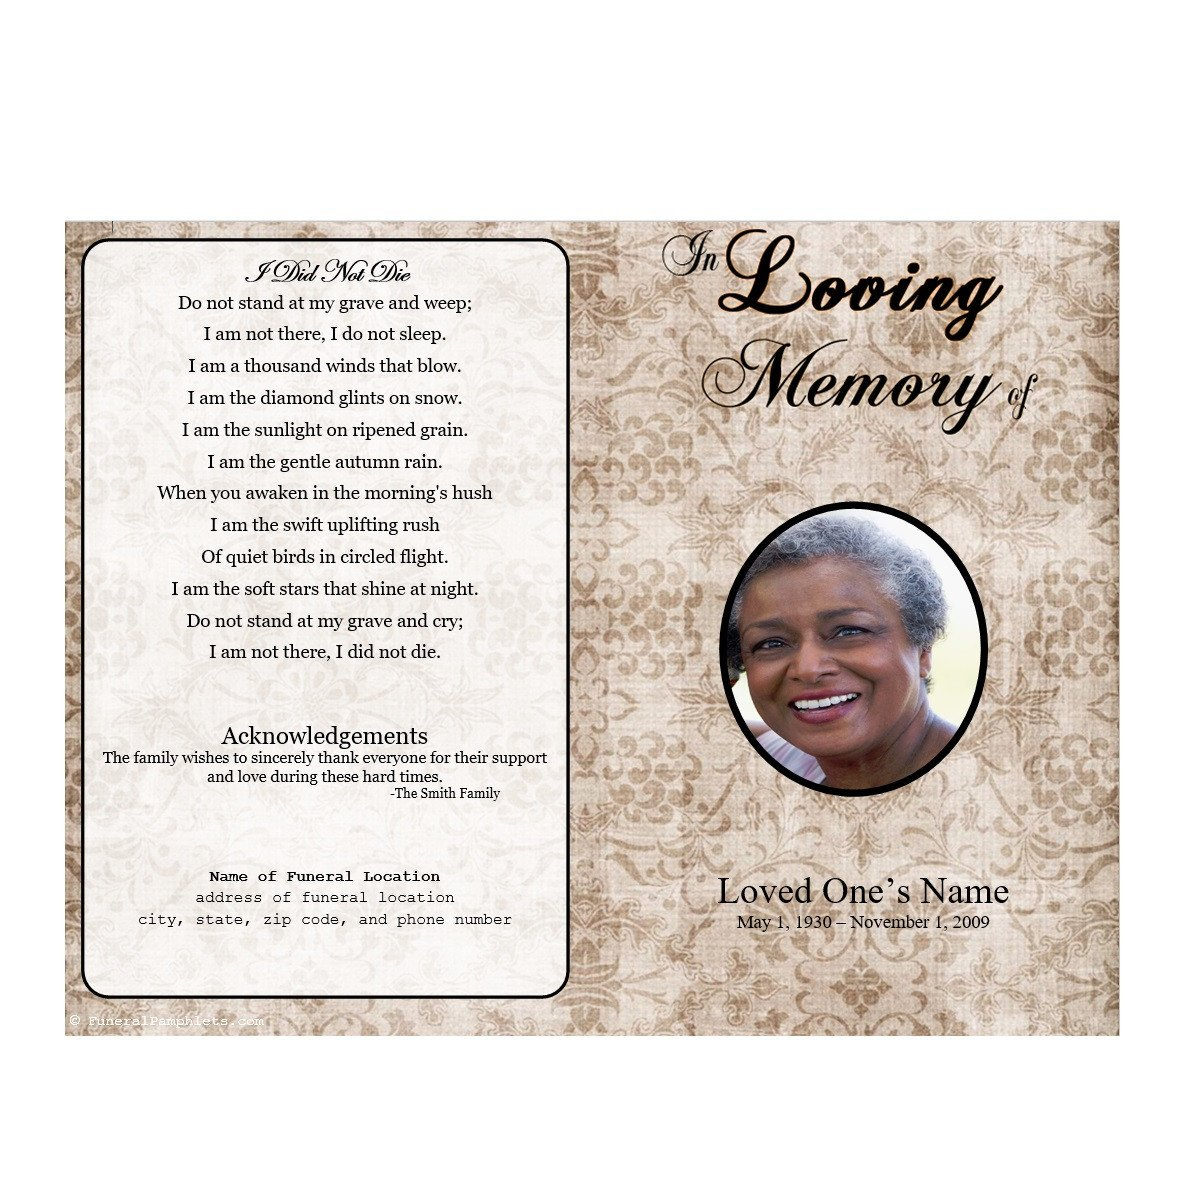 Memorial Services Program Template Floral Designs Single Fold Memorial Program